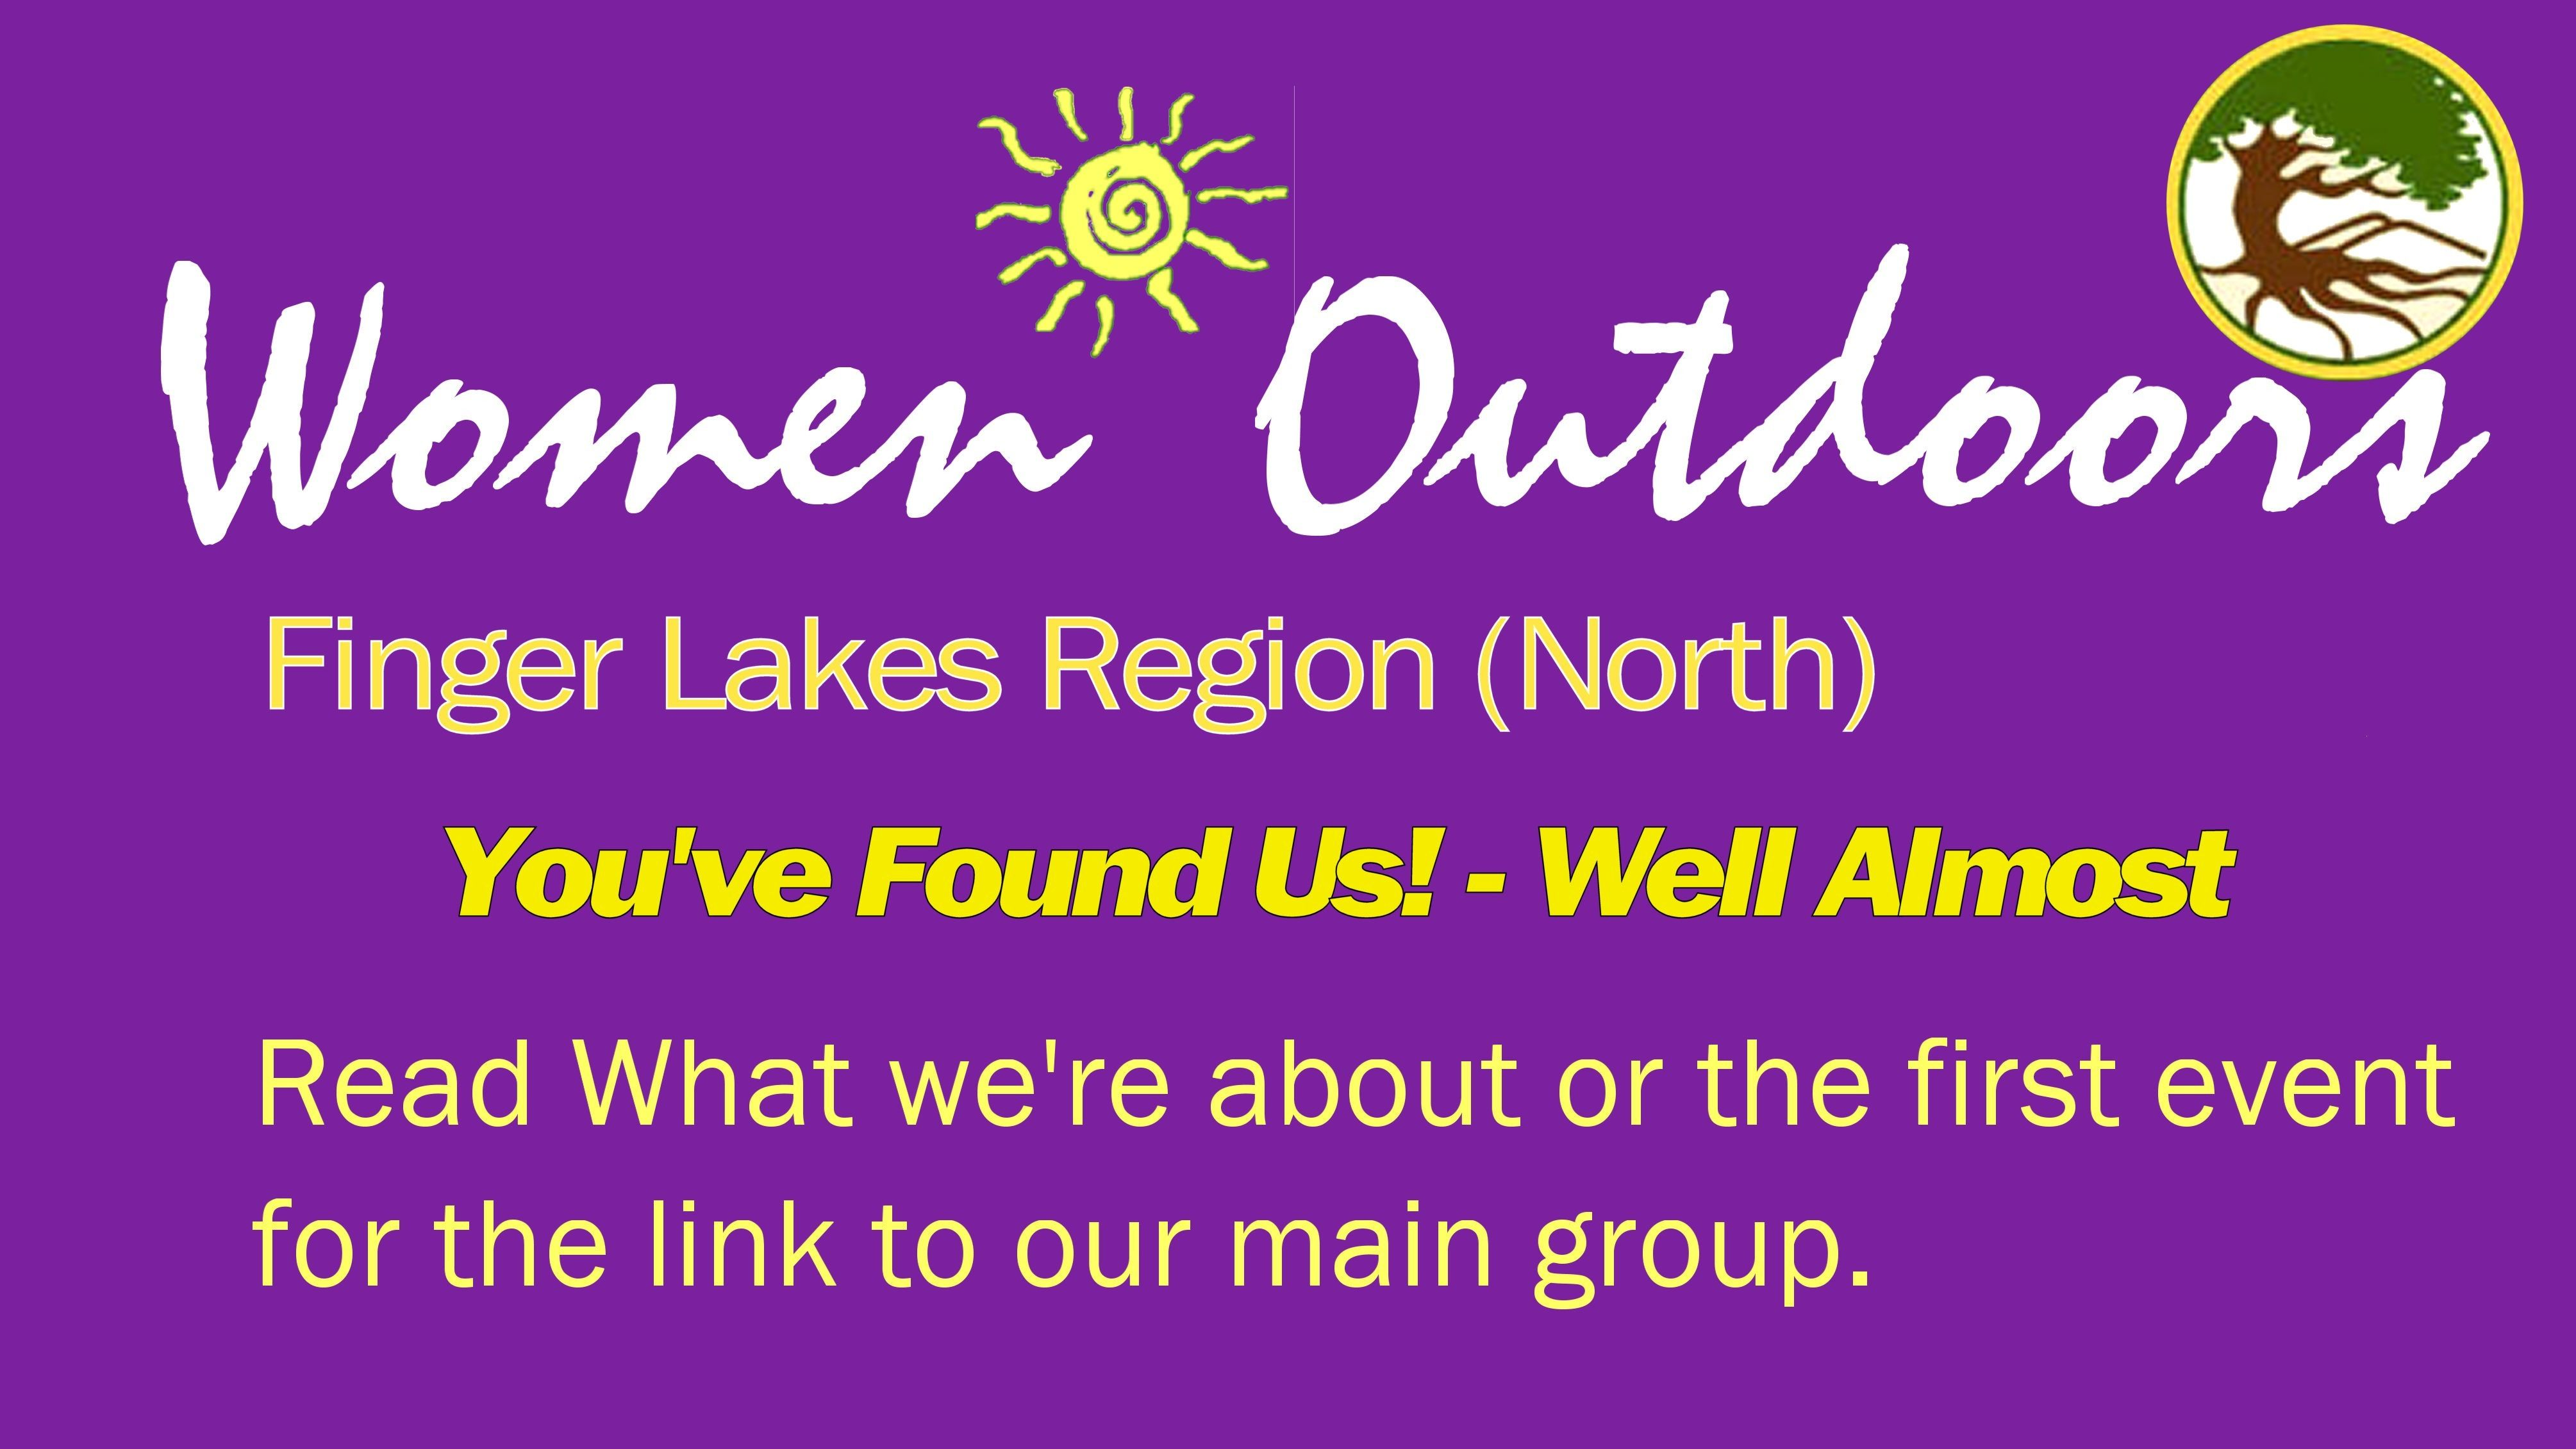 Women Outdoors - Finger Lakes (North)